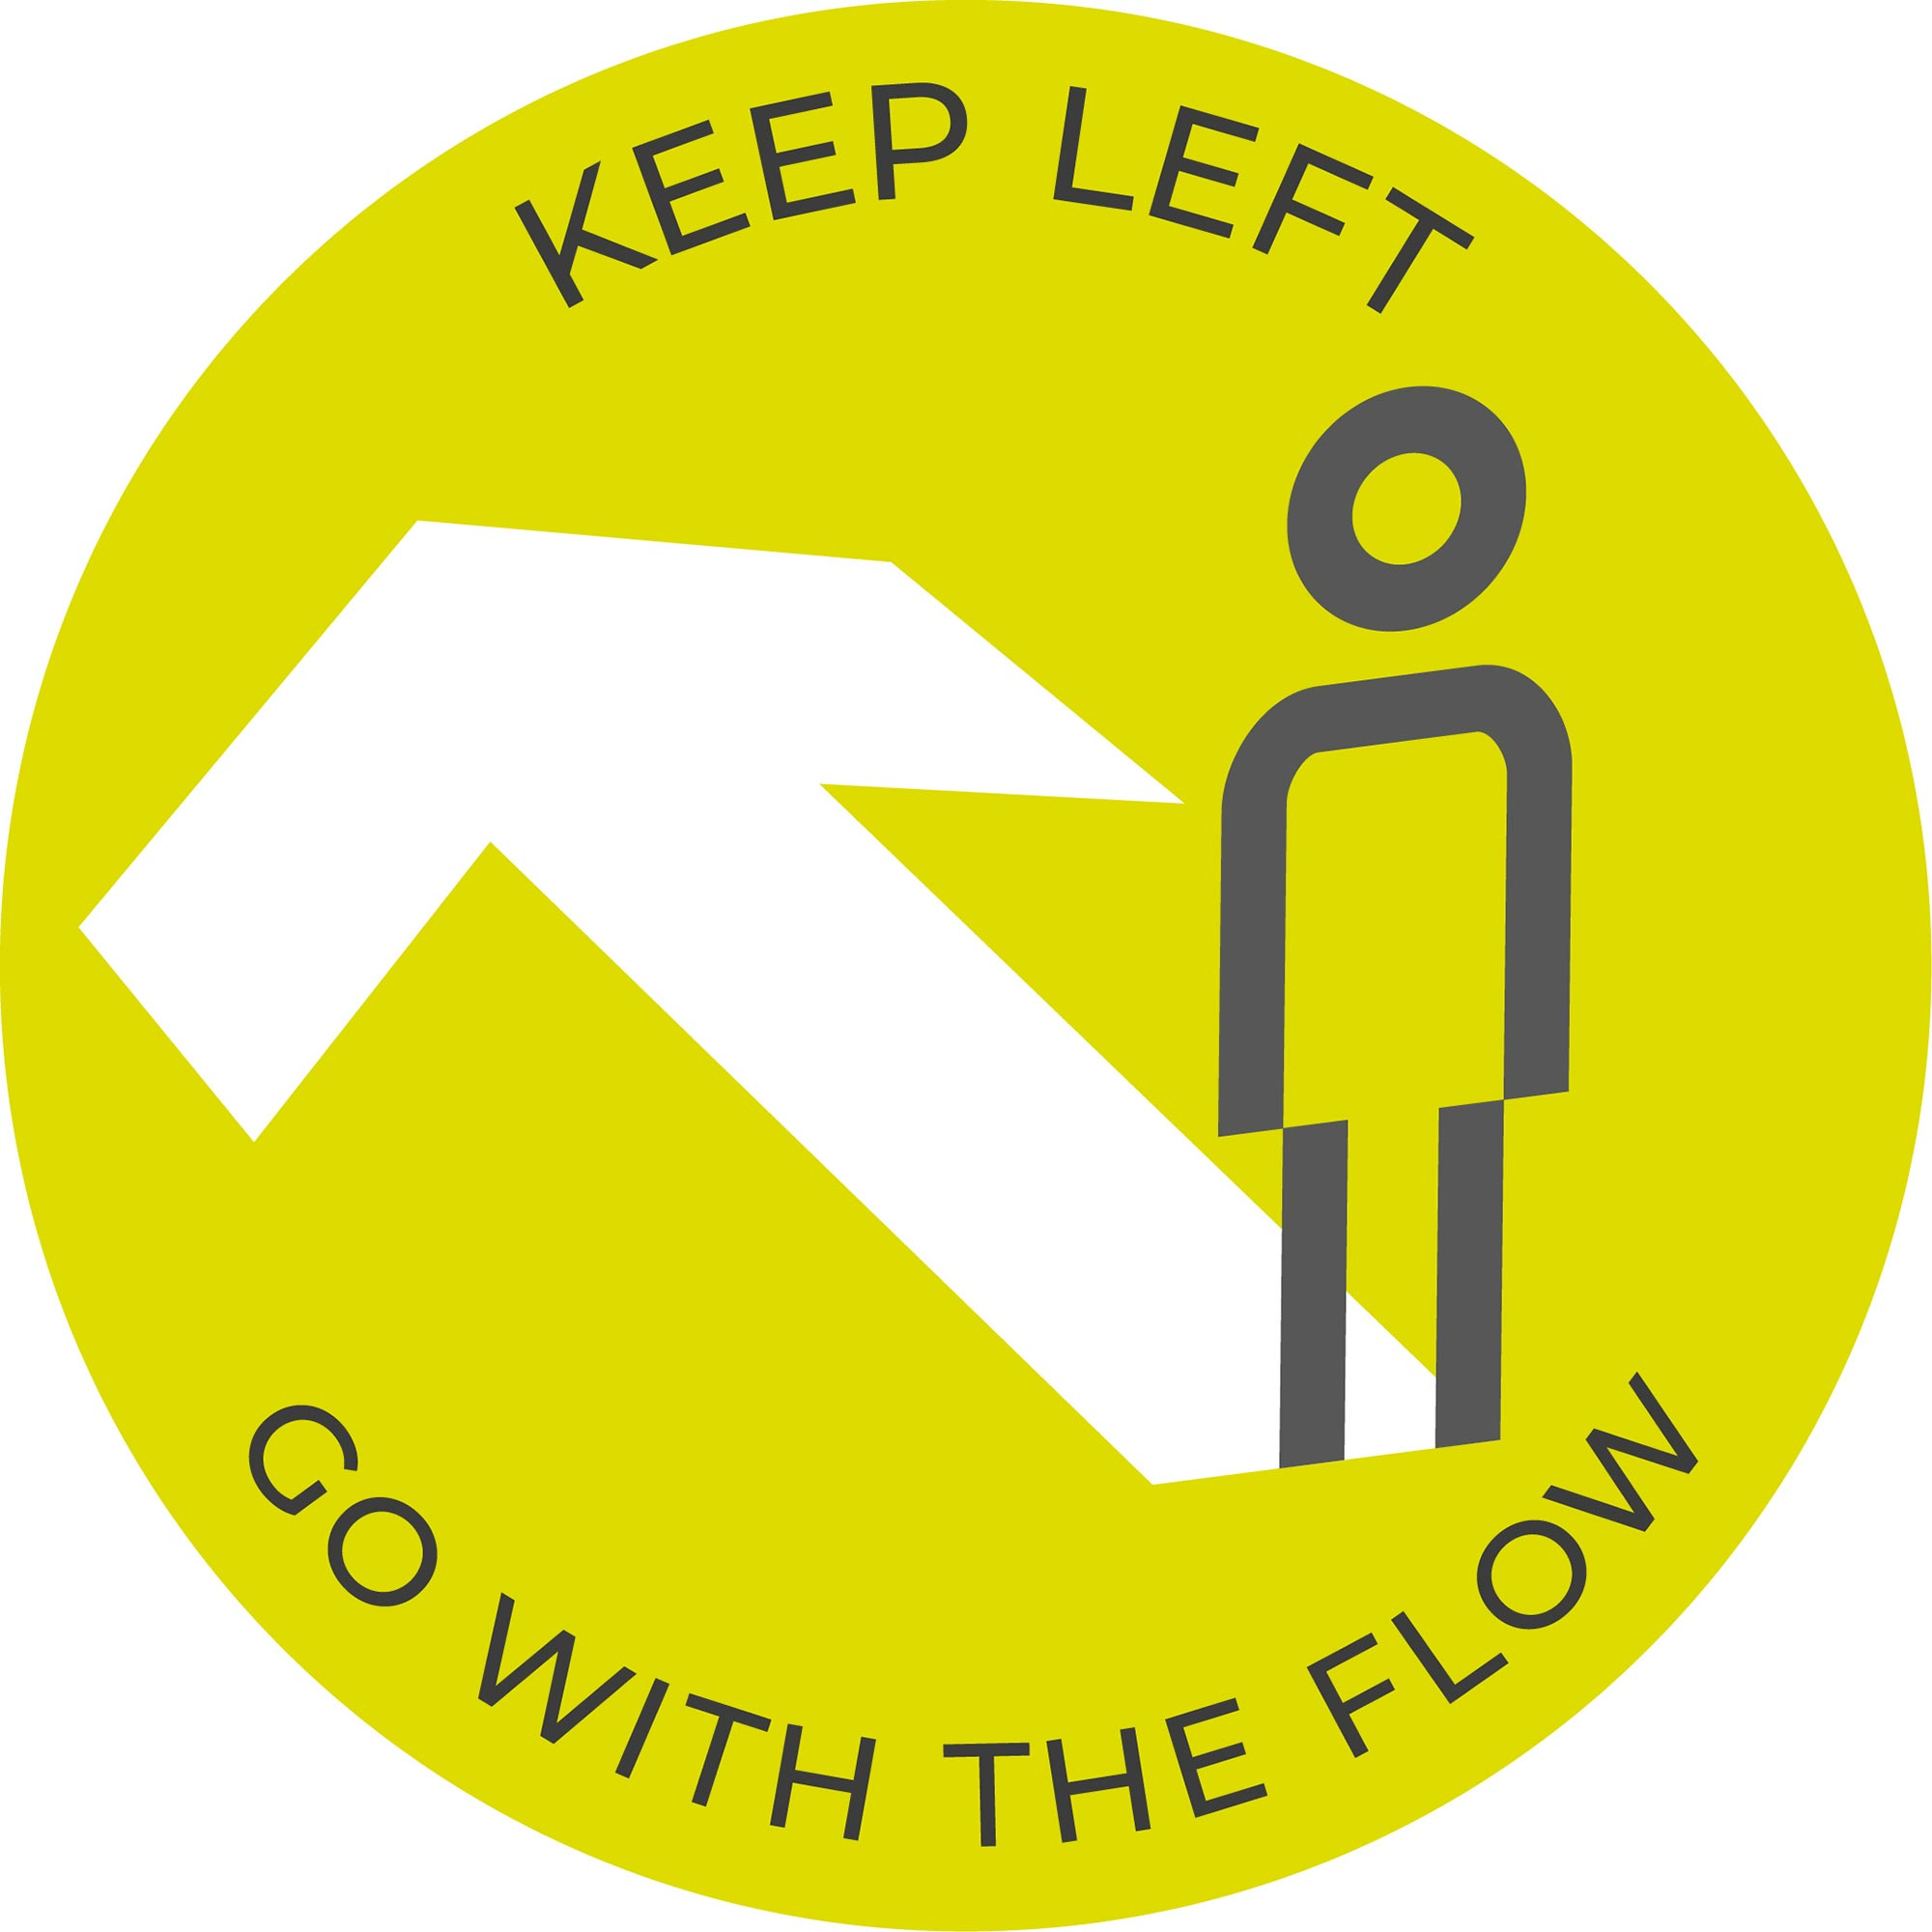 Go with the Flow - Green